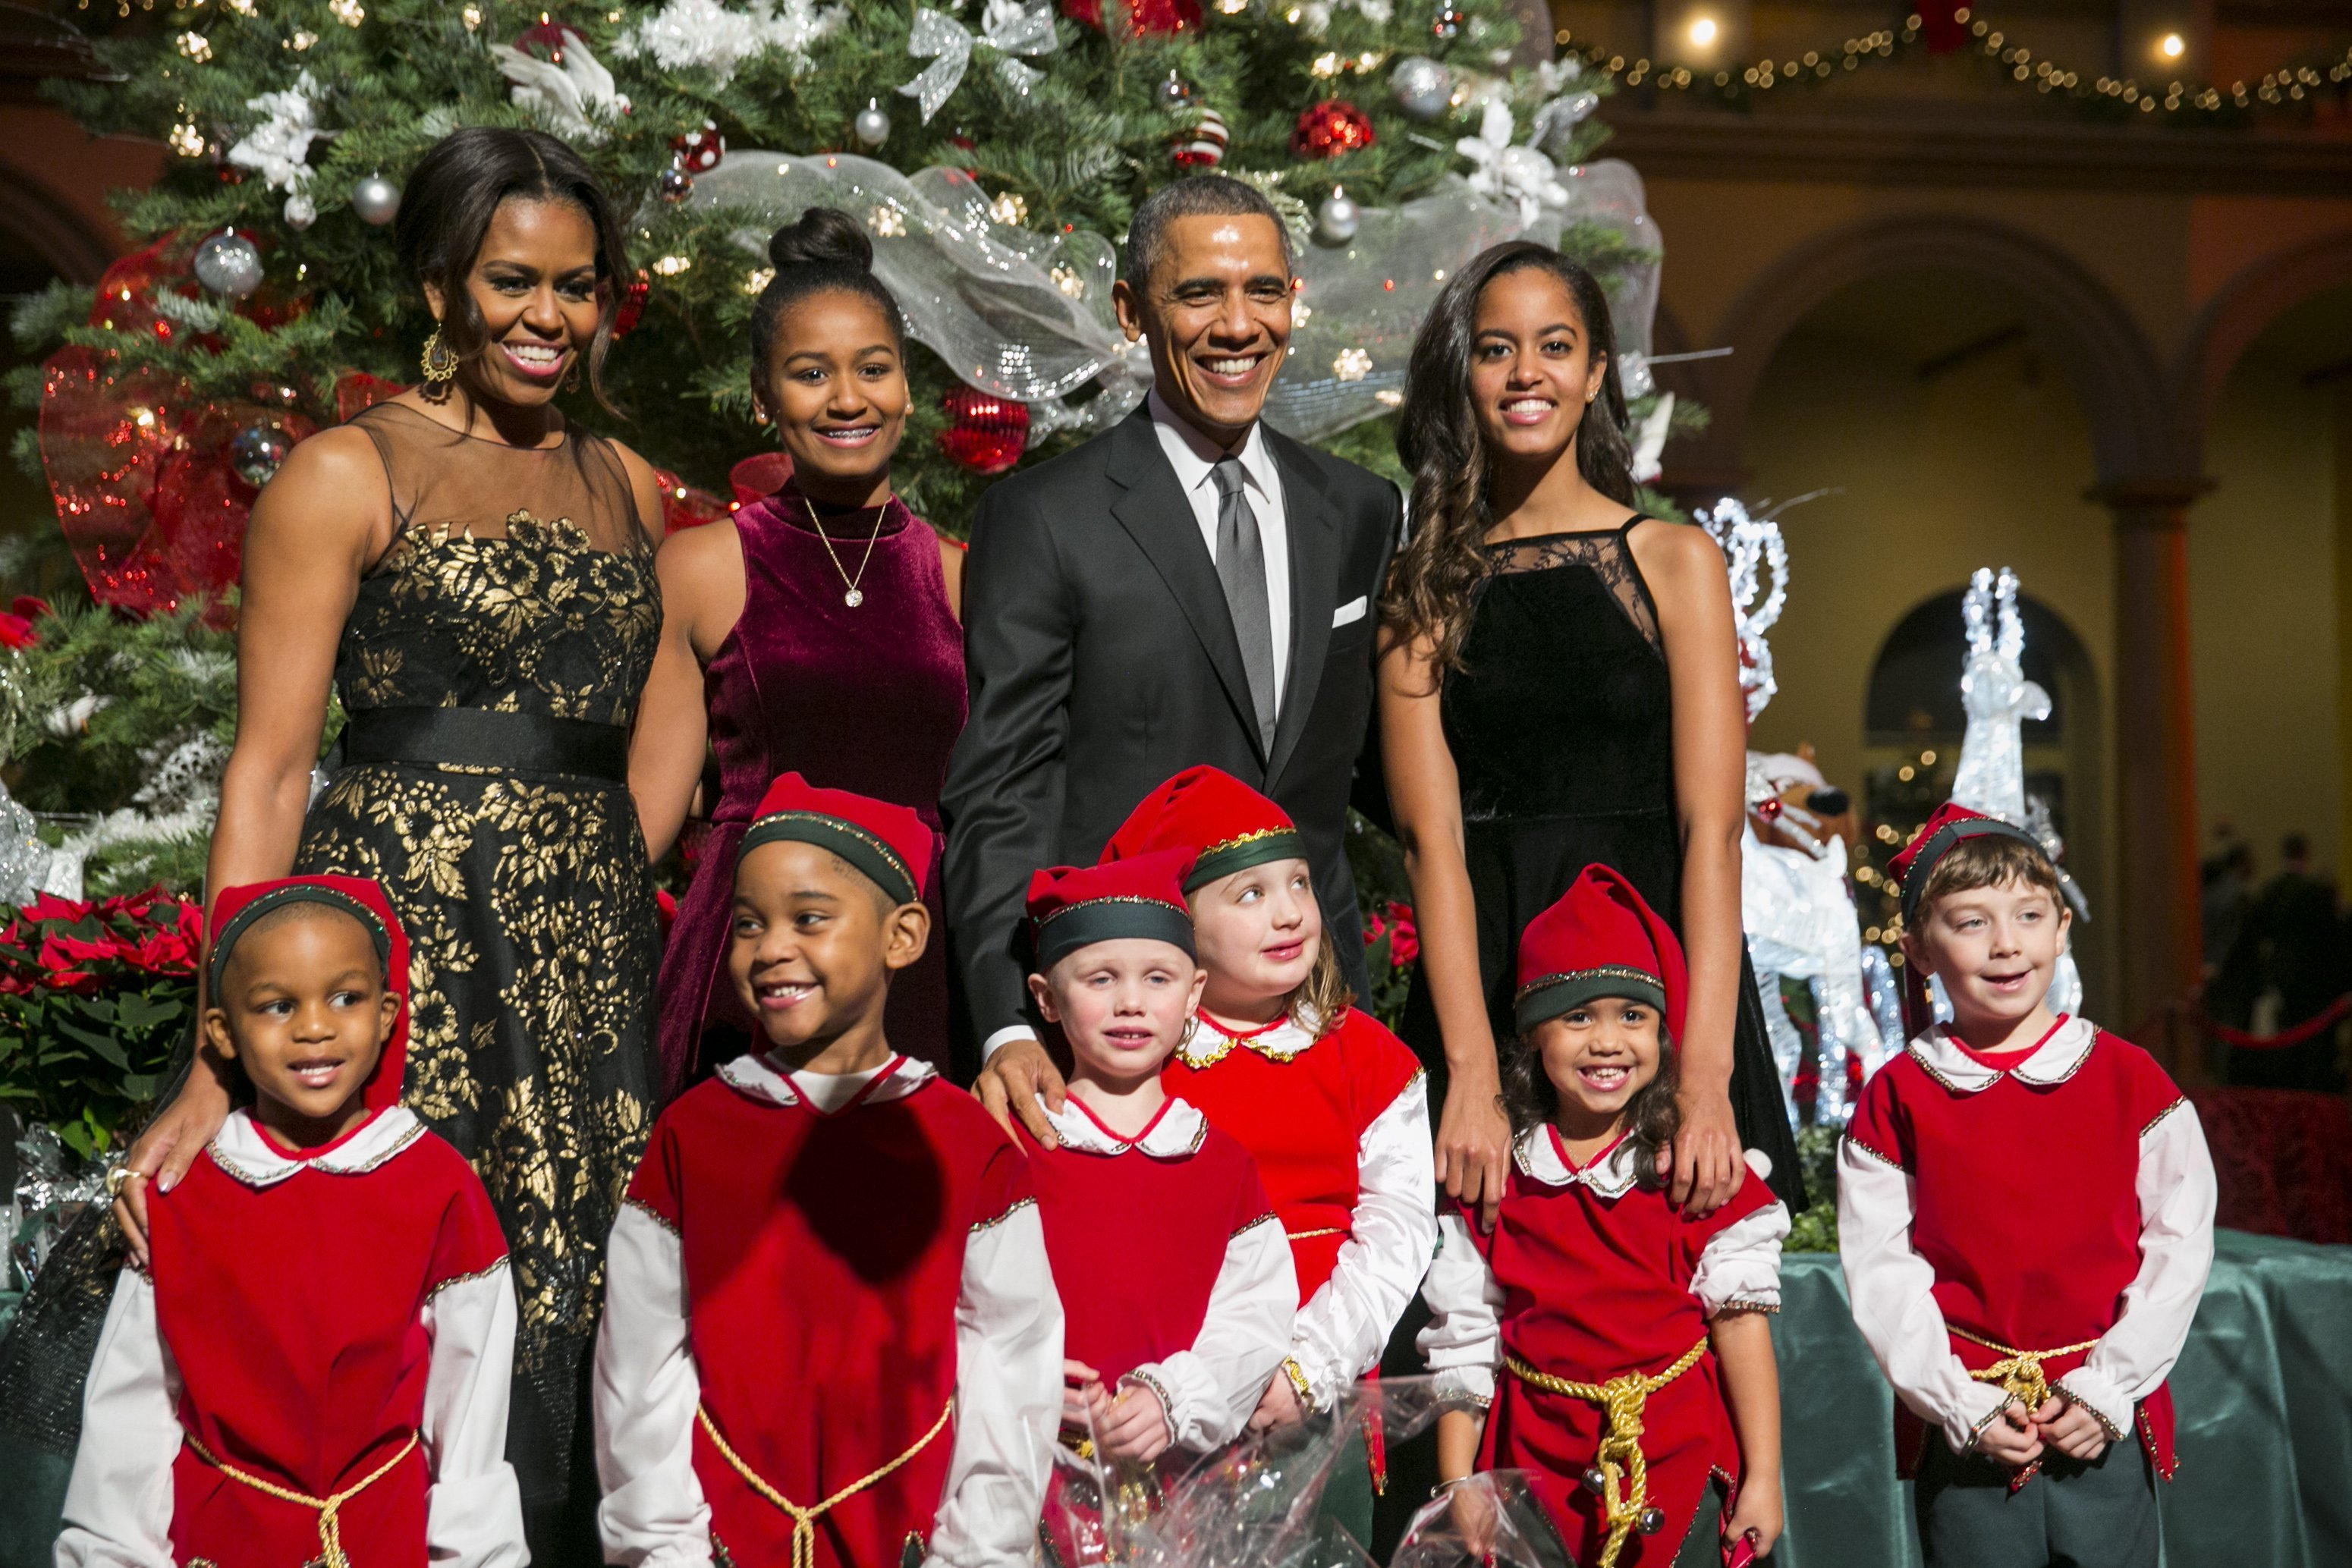 The Obamas at the 'Christmas in Washington' program on Dec. 14, 2014 in Washington, DC. | Photo: Getty Images